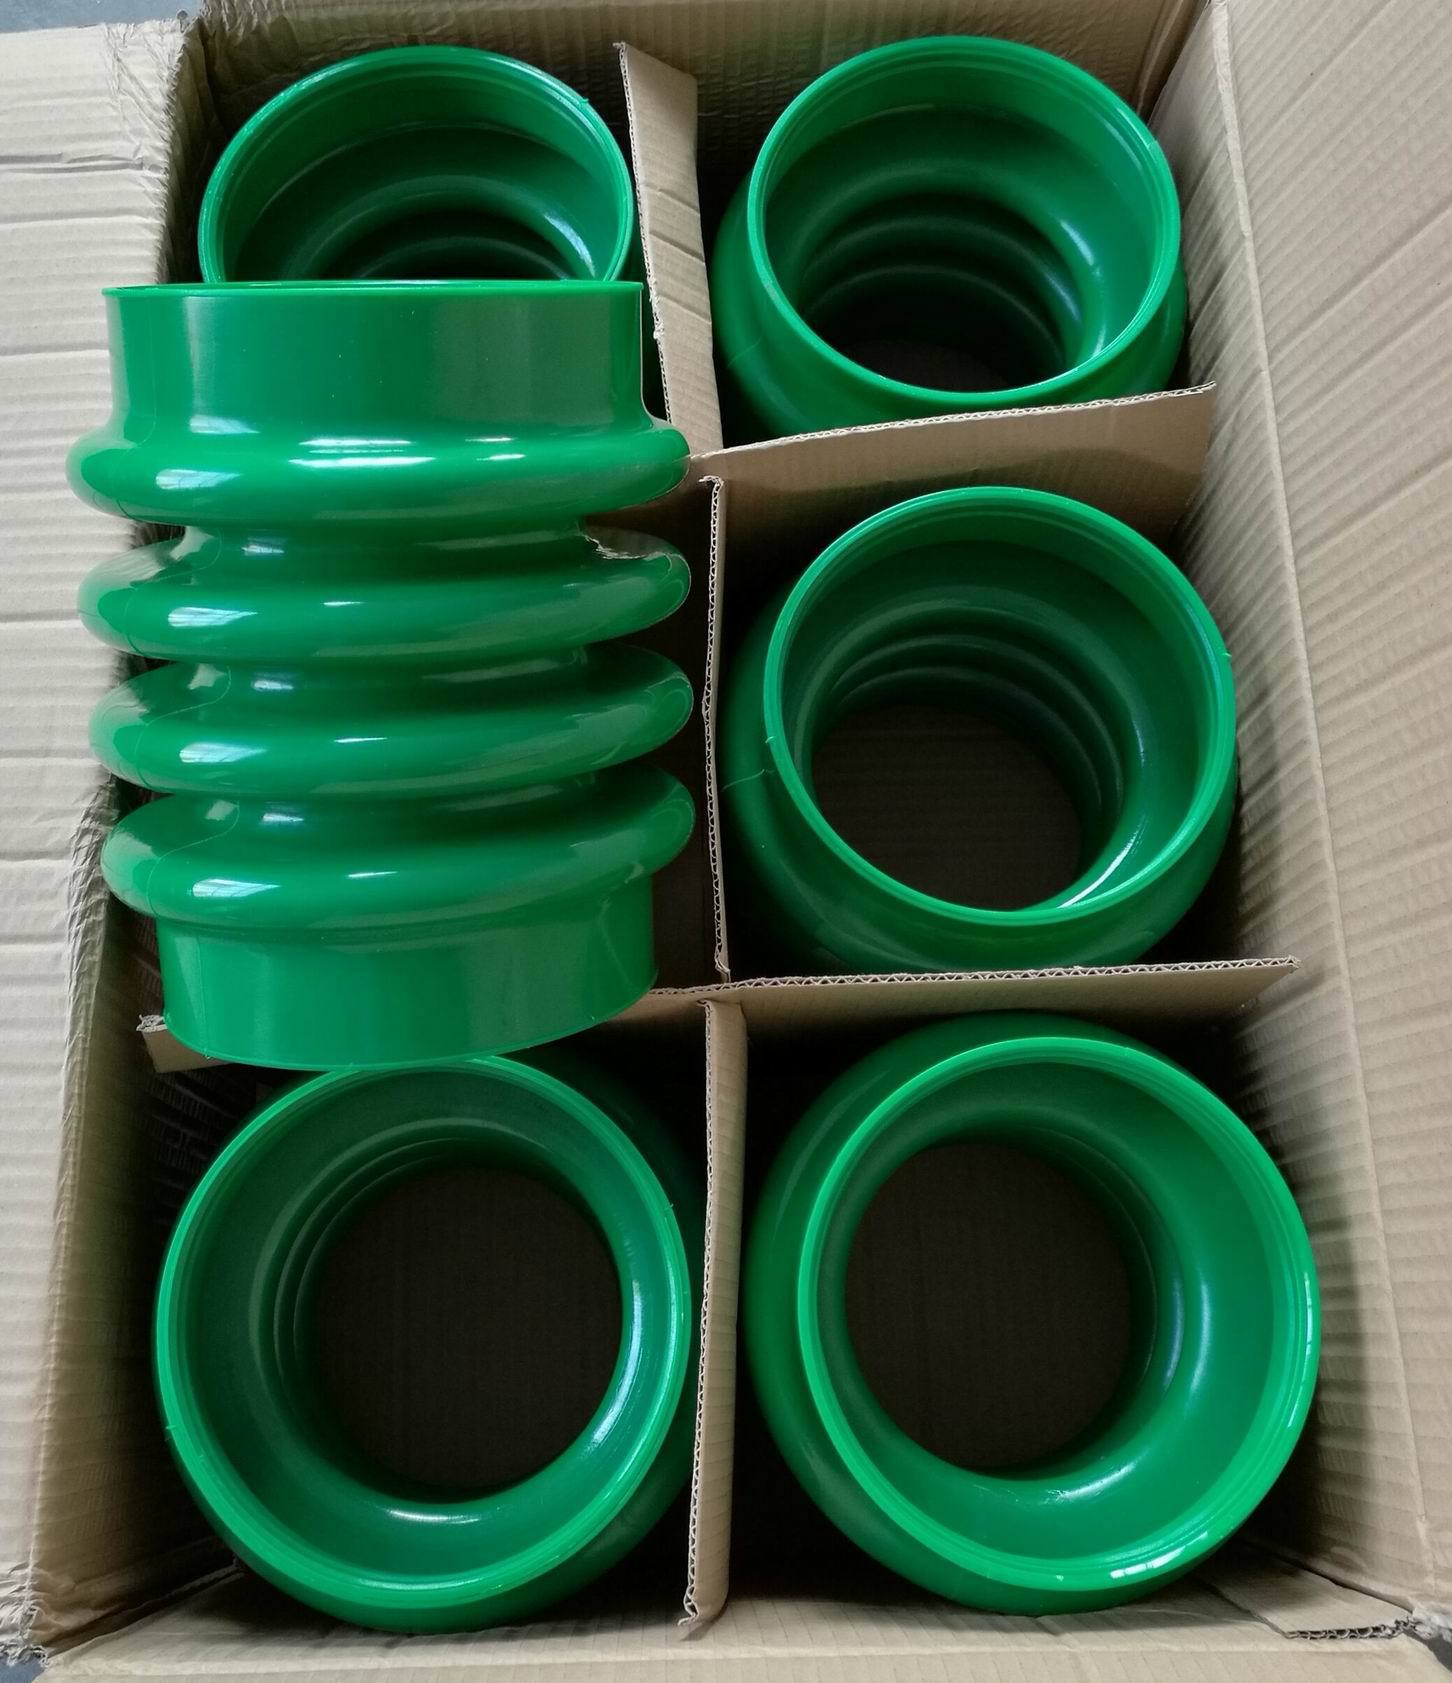 Wacker bellows Wacker BS600 BS700 Rammer Bellow Green ID170 mm H260 mm Green OEM 1006882 enlarge